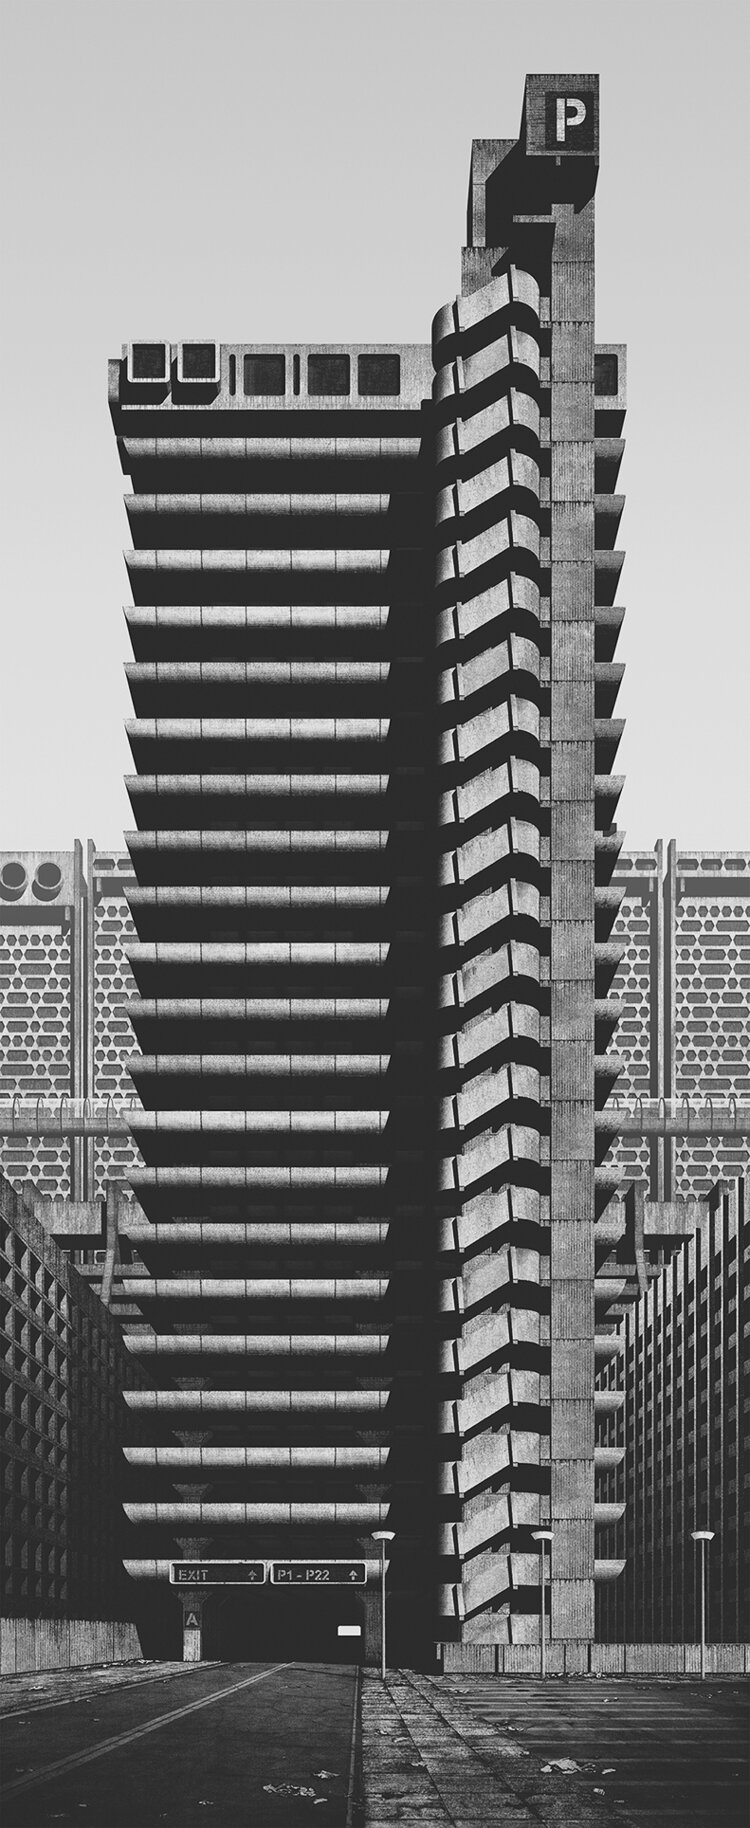 Clemens Gril A Future City From The Past High Rise Brutalist Building Owen Luder Rodney Gordon